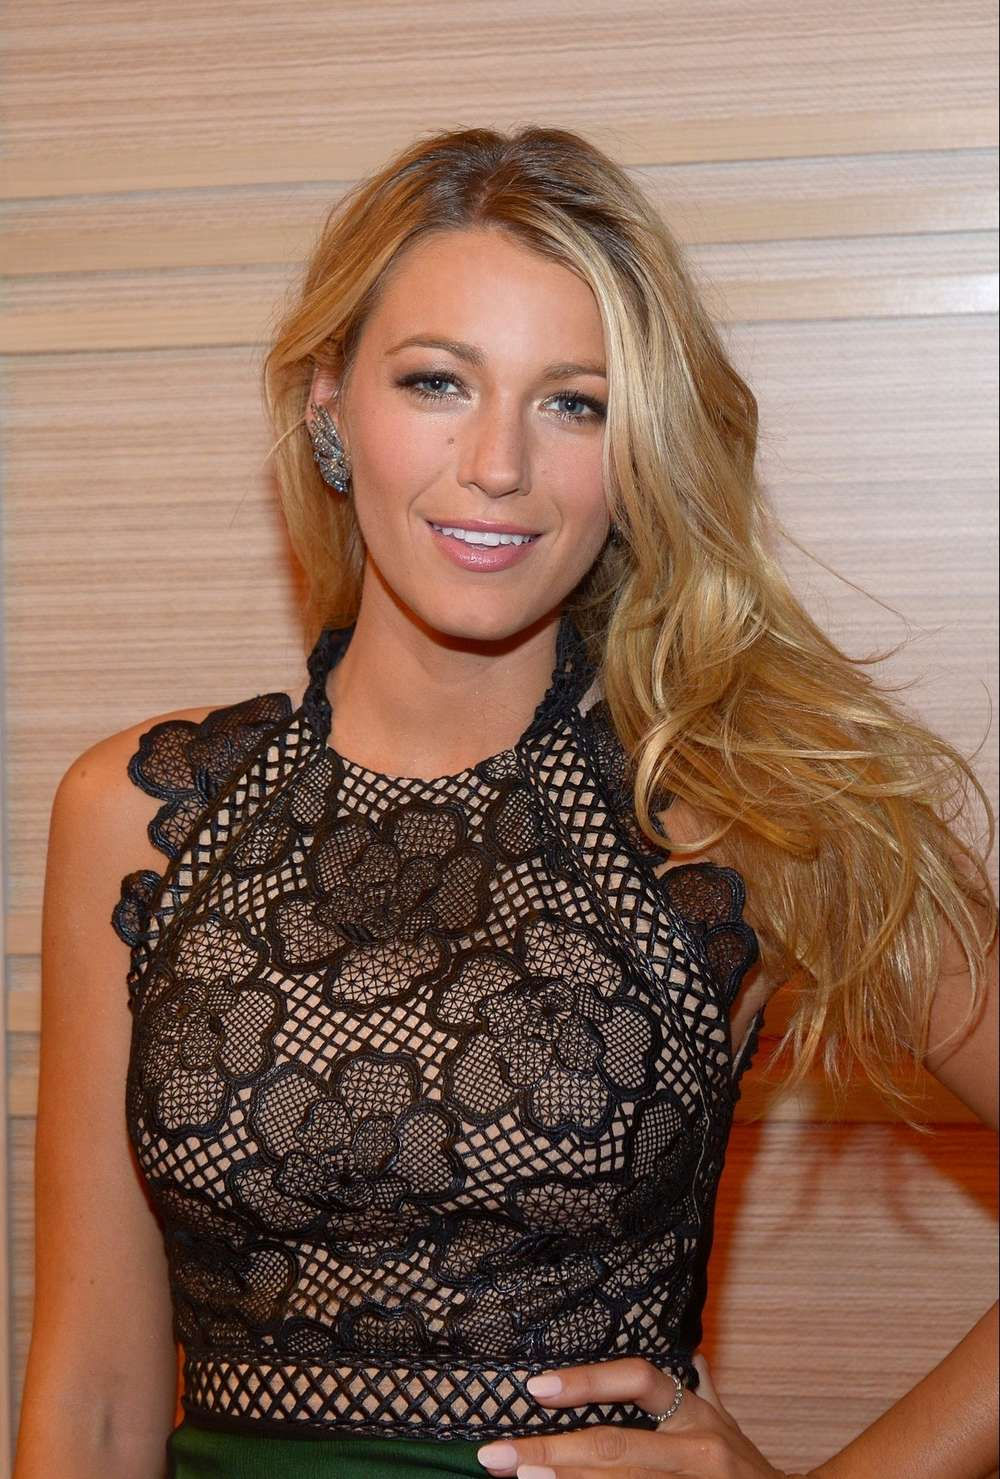 Blake Lively 2012 : Blake Lively in a tight skirt-02